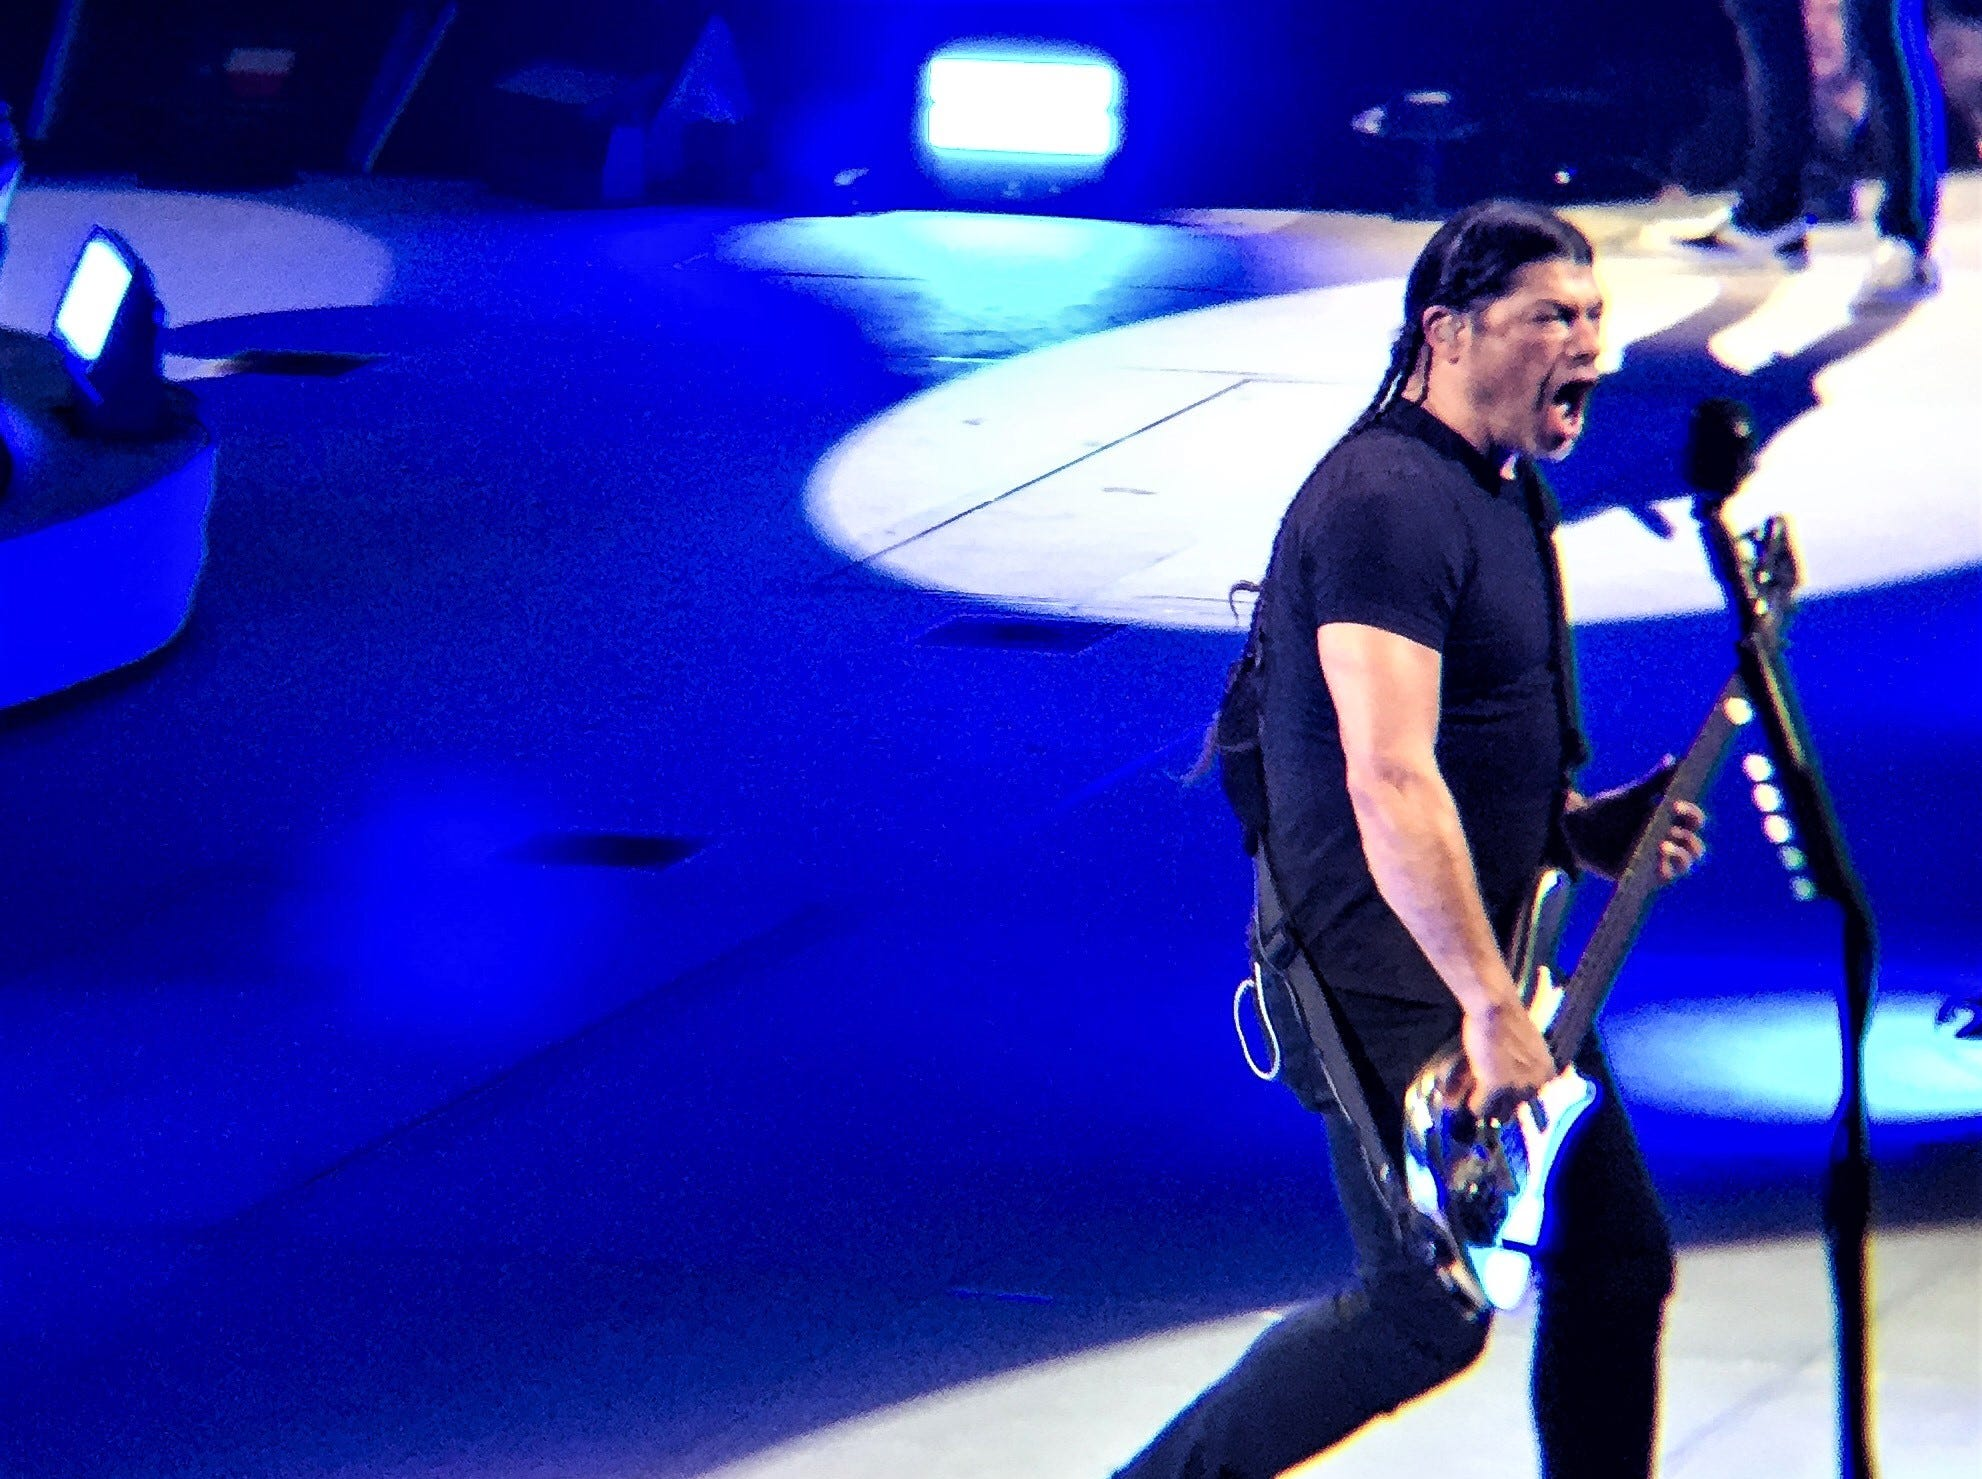 Robert Trujillo plays bass at the Metallica concert Thursday, Feb. 28, 2019, at the Don Haskins Center.